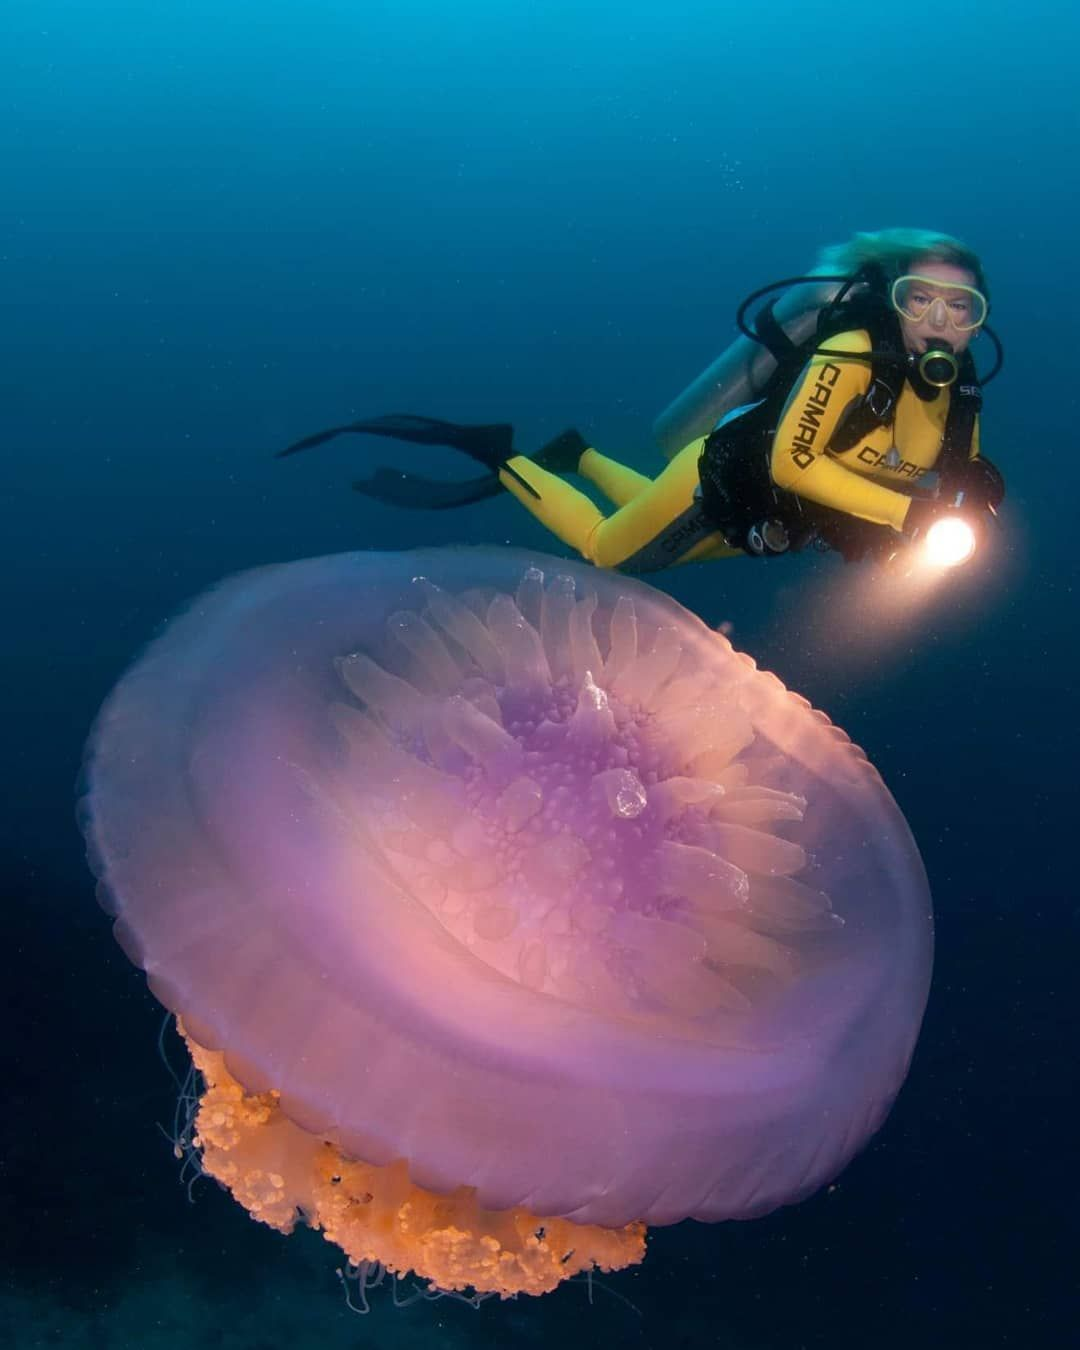 Jellyfish Diving Gear : jellyfish, diving, Jellyfish, Floating, About, Million, Years, Before, Dinosaurs, Heart,, Brain, 98…, Floating,, Dinosaur,